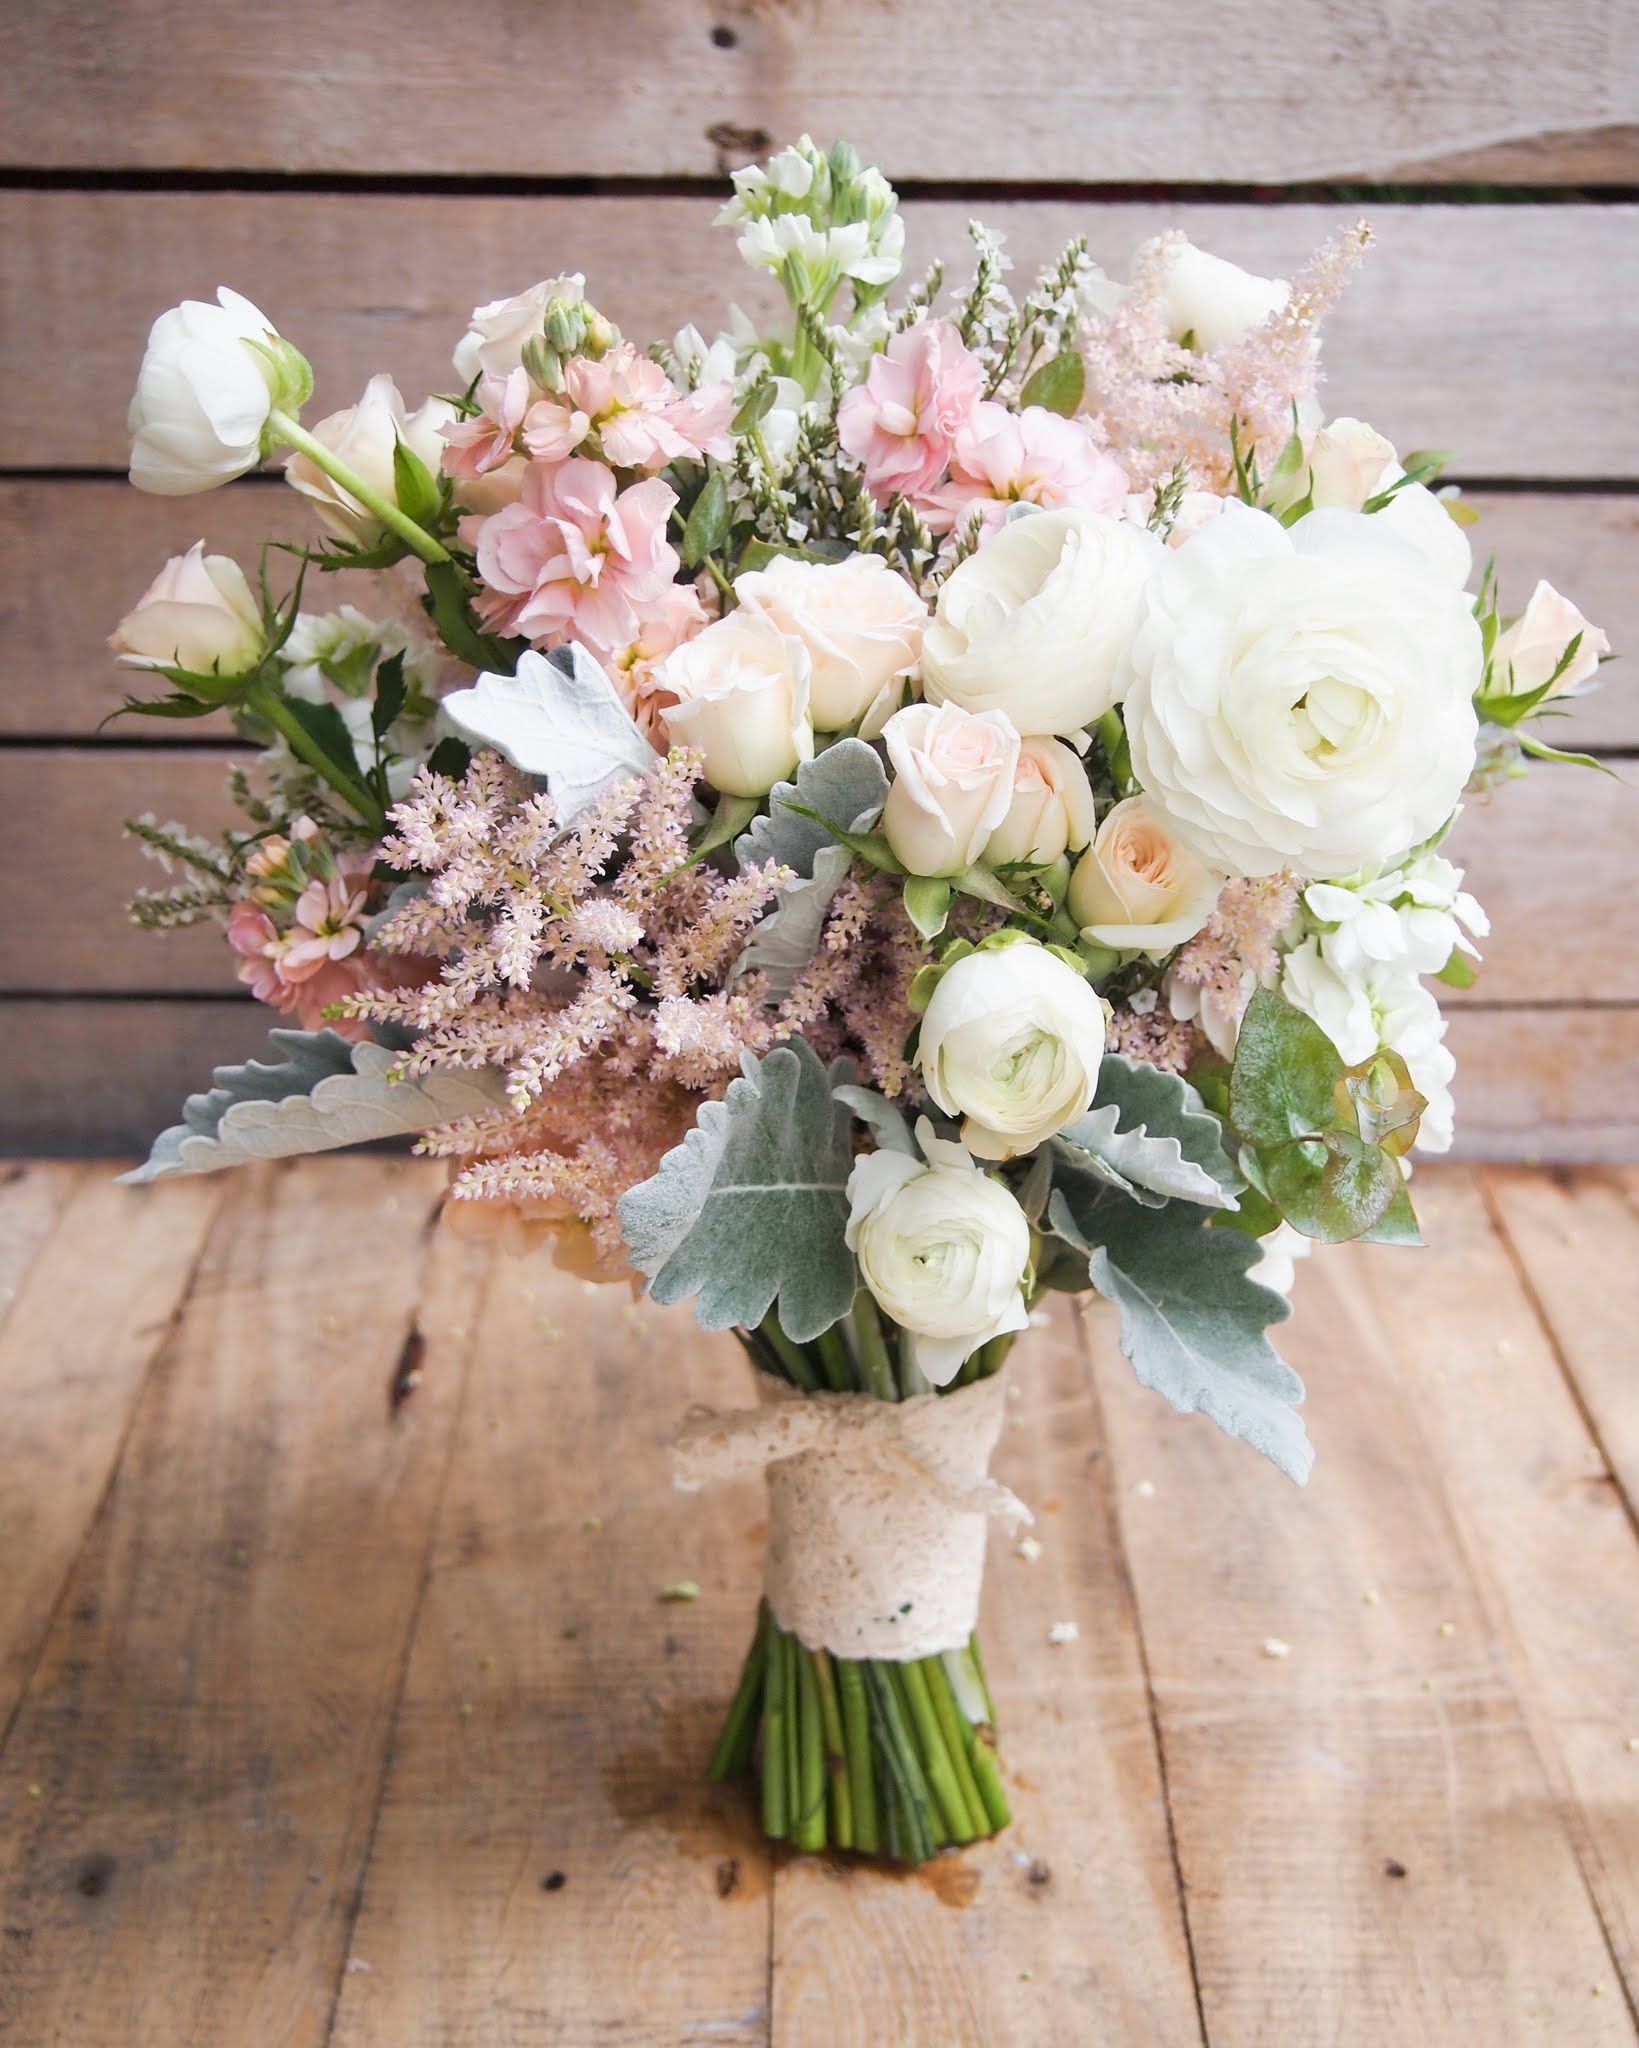 astilbe ranunculus spray roses for a sweet bridal bouquet by floral